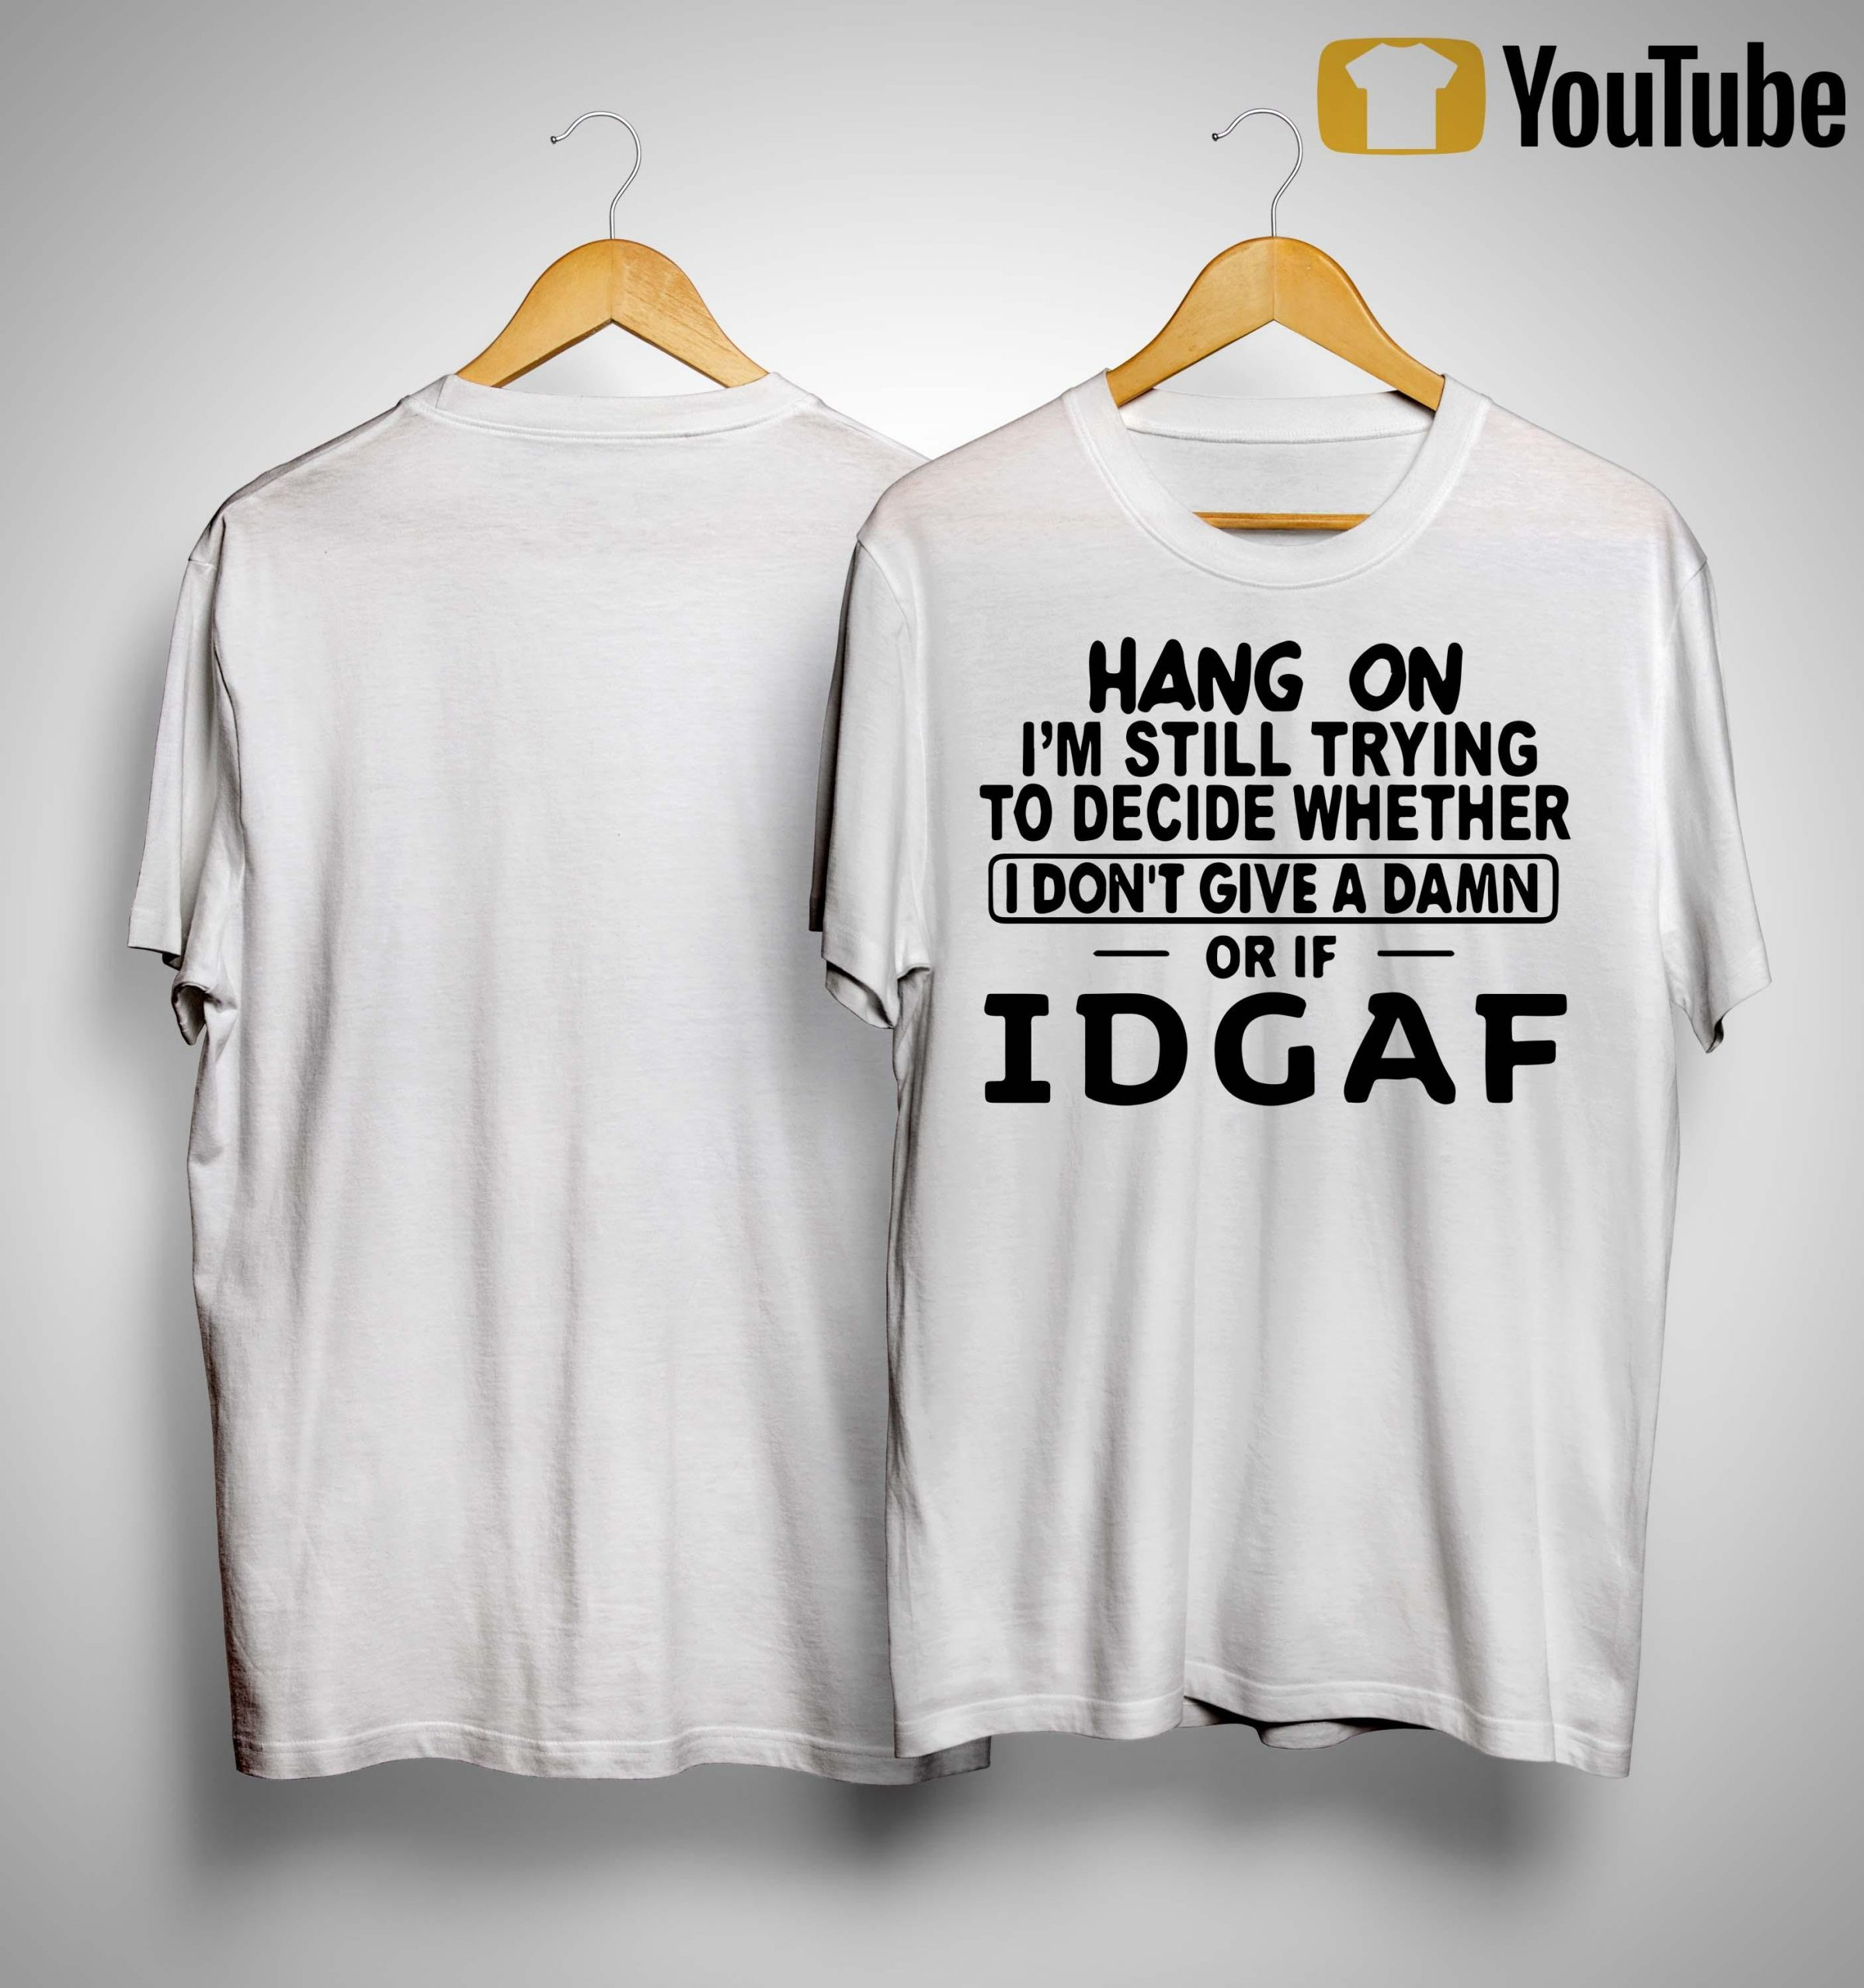 Hang On I'm Still Trying To Decide Whether I Don't Give A Damn Or If Idgaf Shirt